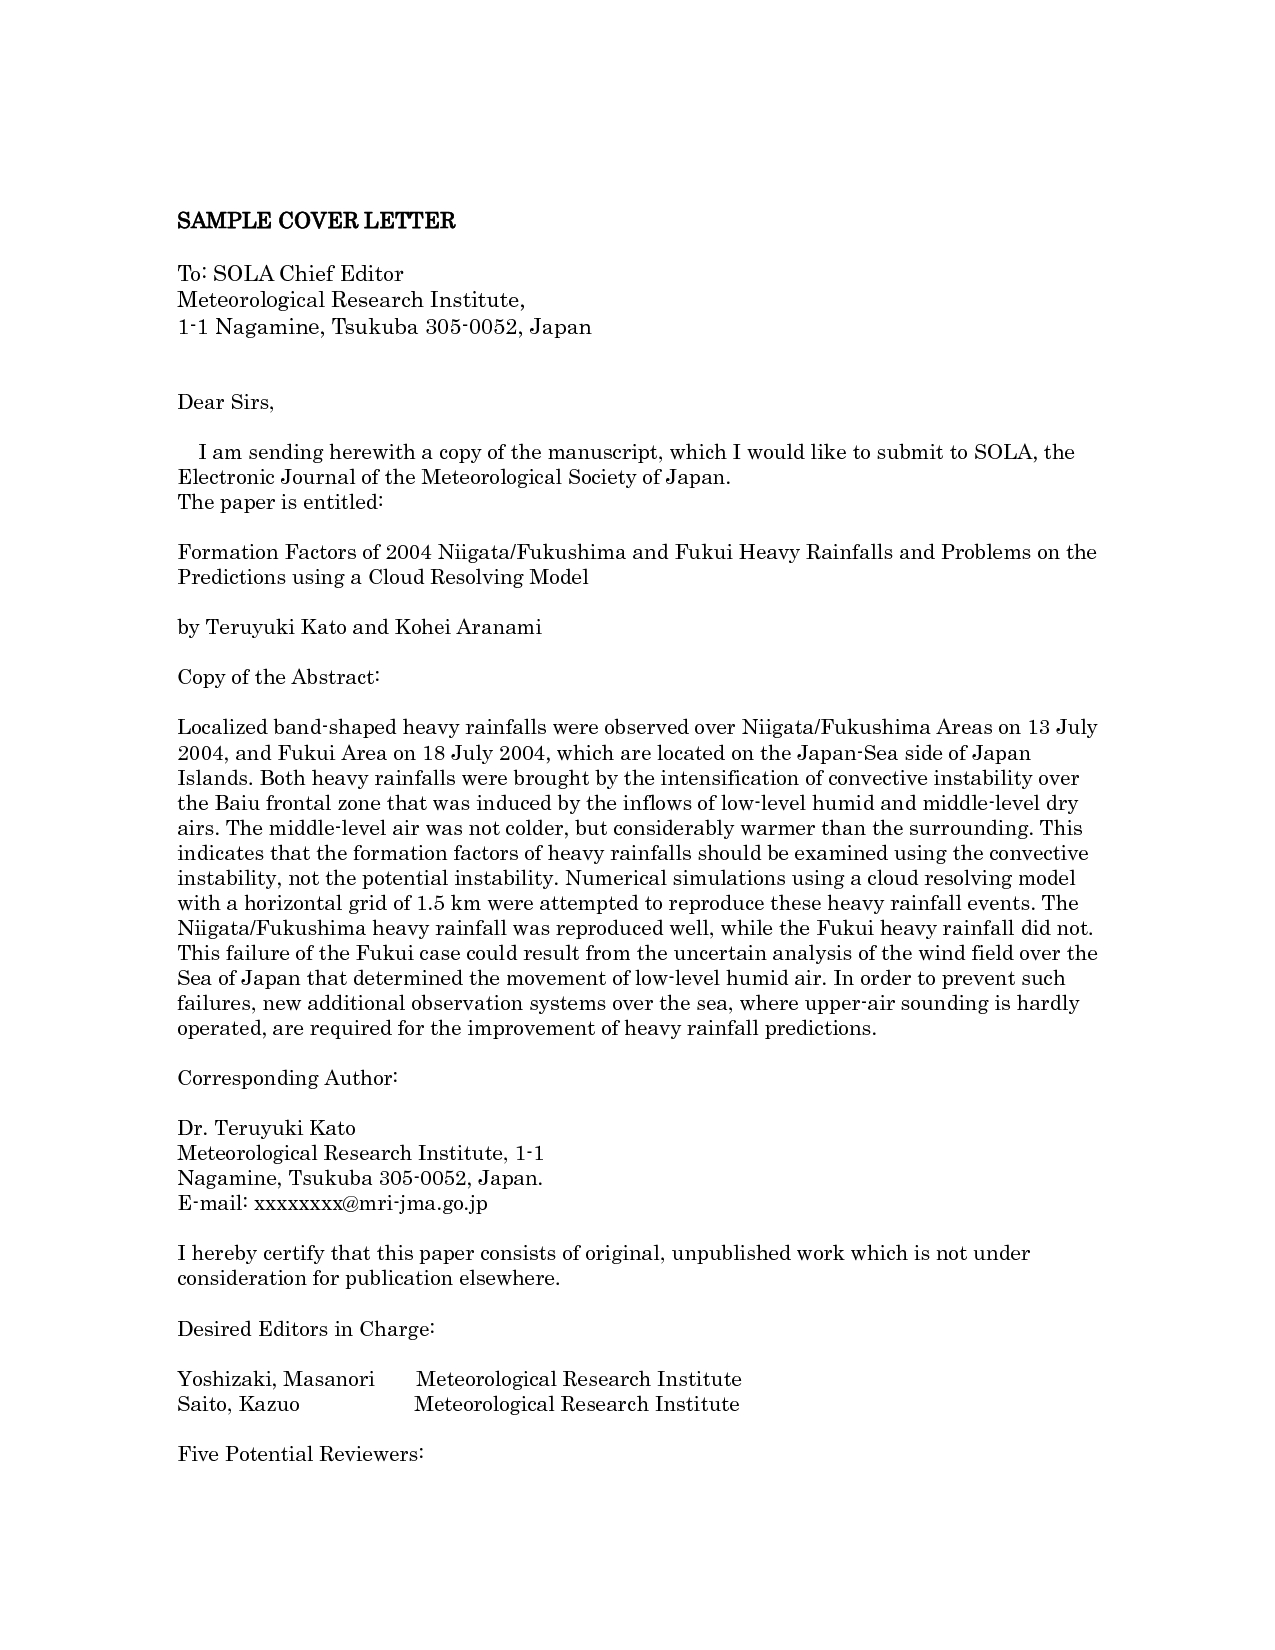 014 Research Paper Editor Cover Letter Breathtaking Free Professional Editors Software Full